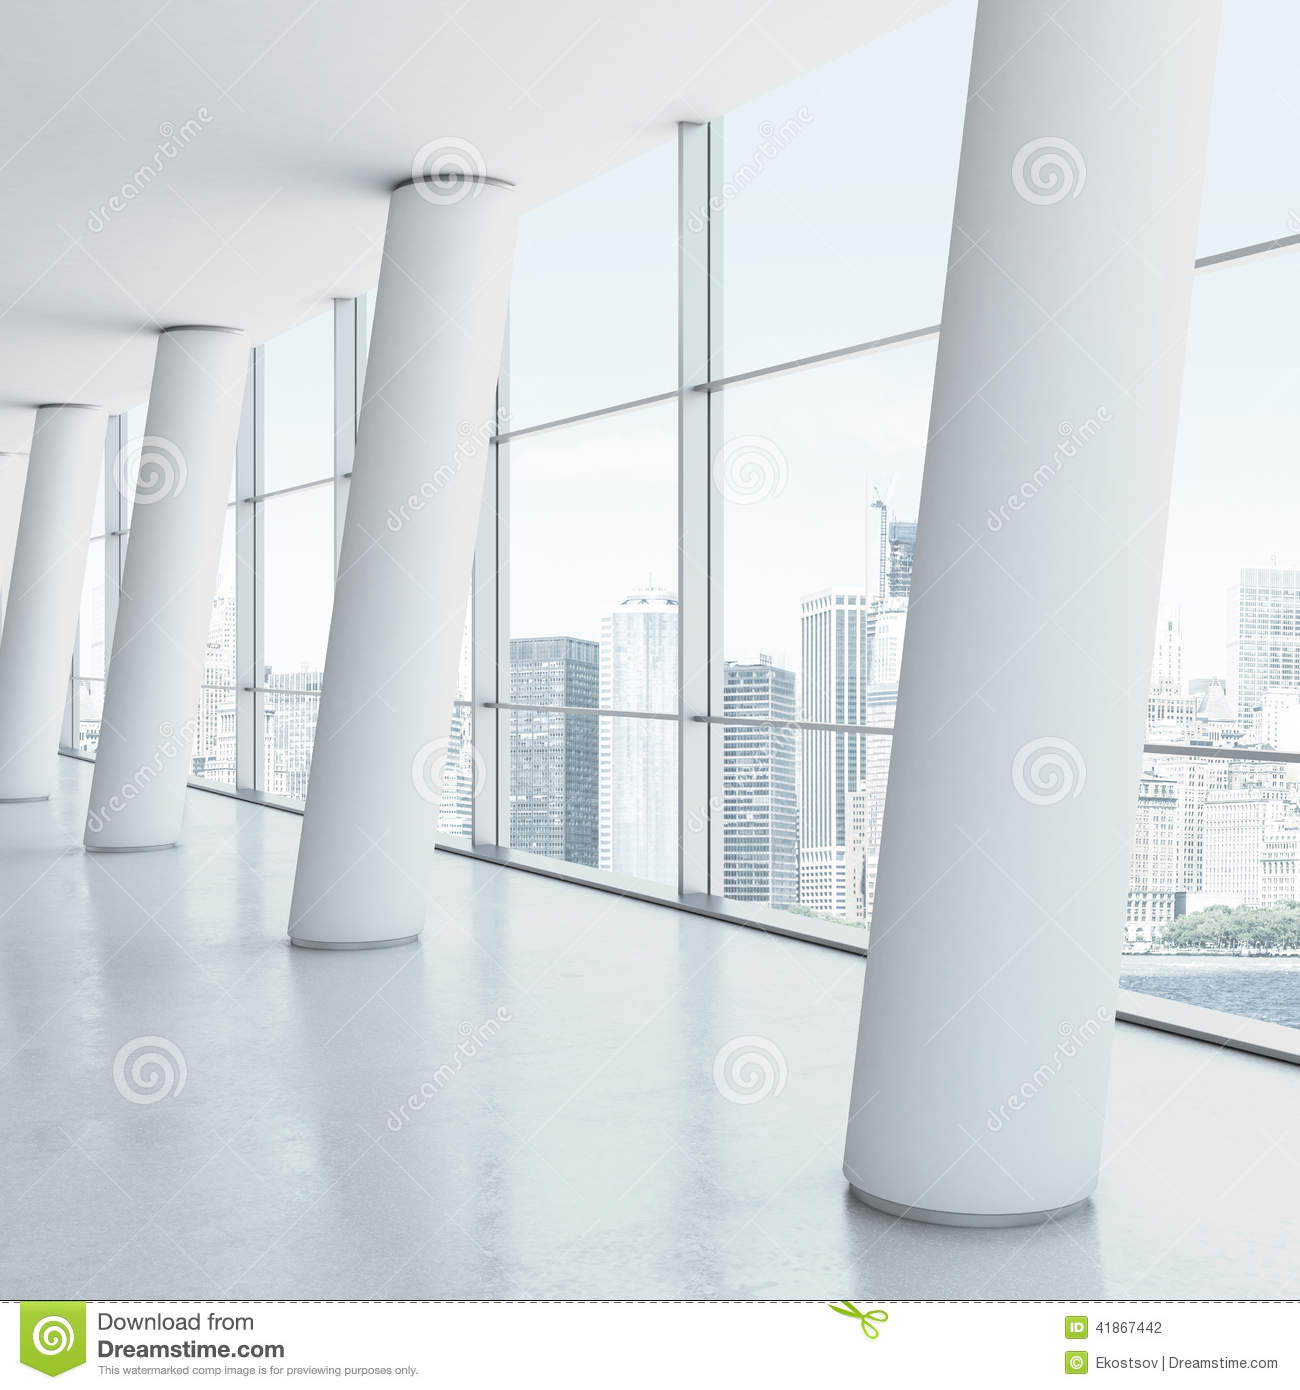 Office Interior With Columns Stock Photo - Image: 41867442